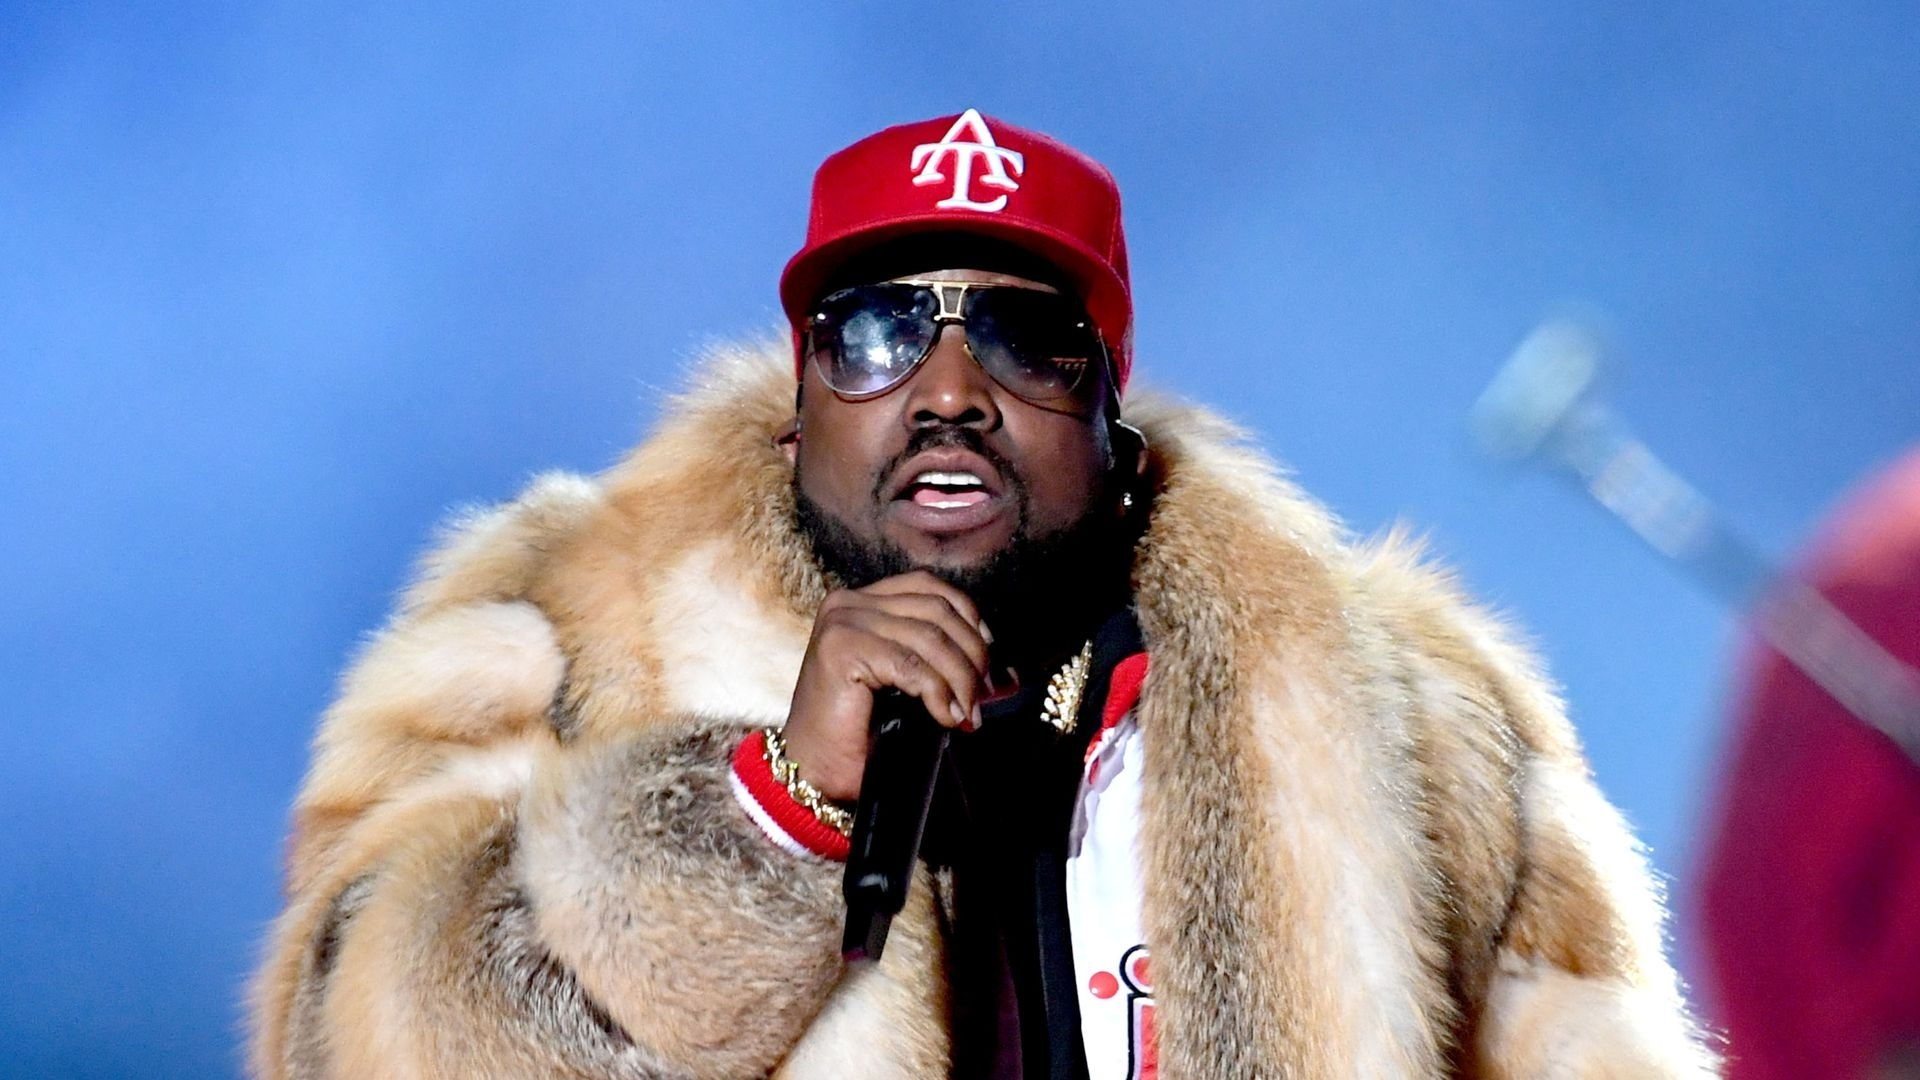 Pelziger Super-Bowl-Gig: Big Boi Soll Seinen Mantel Spenden throughout Big Boi Super Bowl